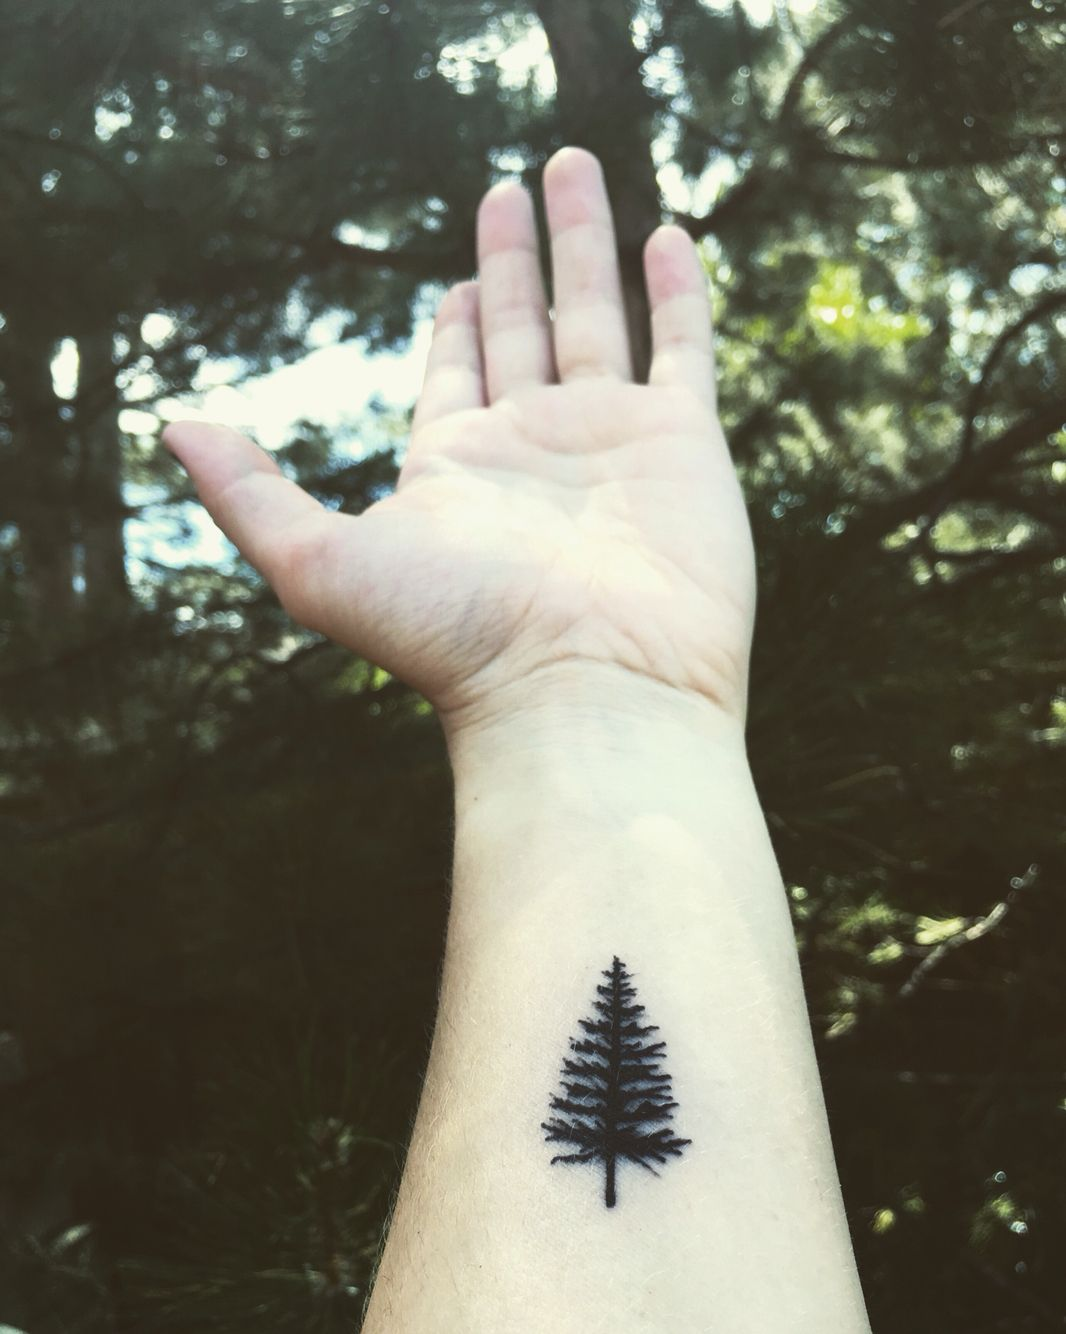 My First Tattoo Pinetree Small Black Wrist Tree Tattoo Small Tree Sleeve Tattoo Small Black Tattoos